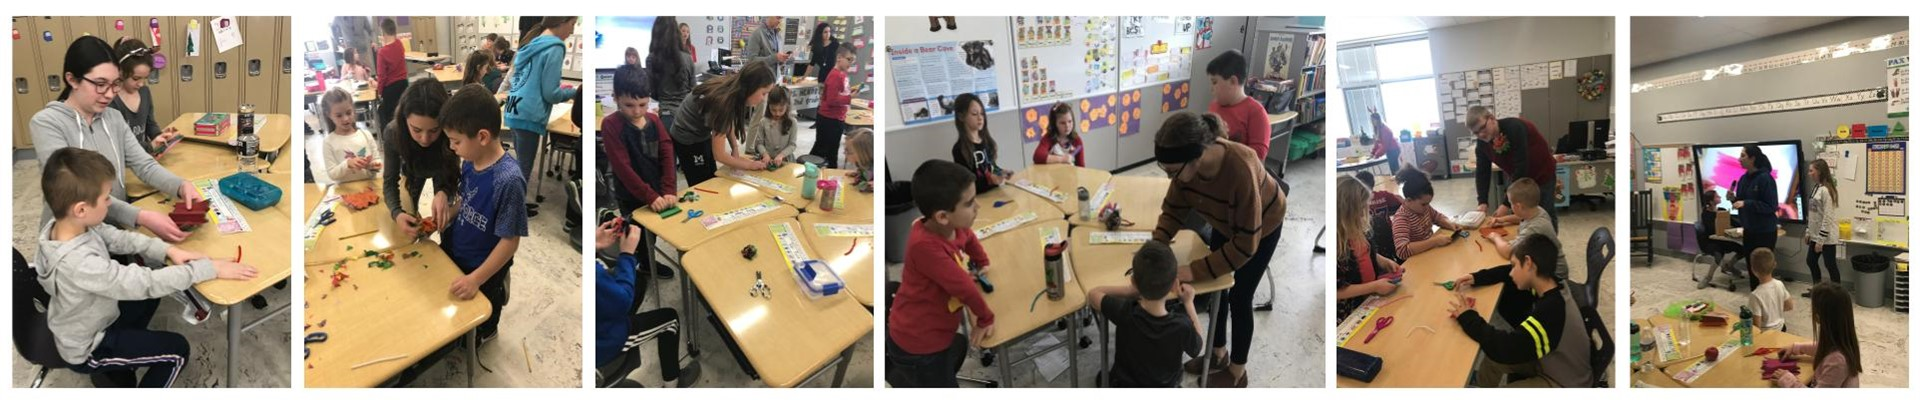 5 pictures of 8th grade students helping kids make tissue flowers